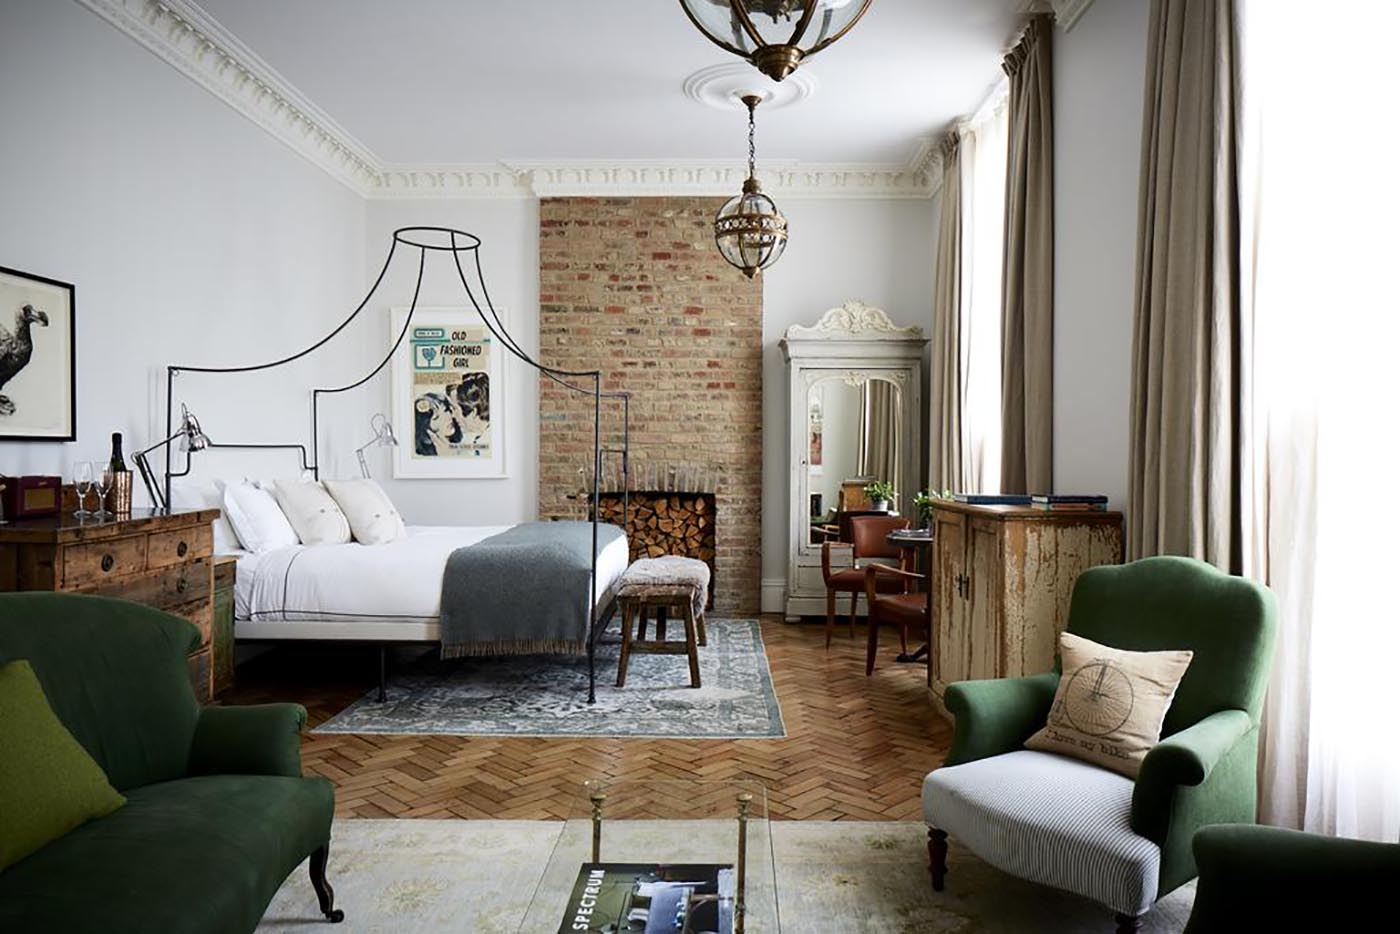 Best hotels in london 2018 edition the discoveries of for Design hotel london